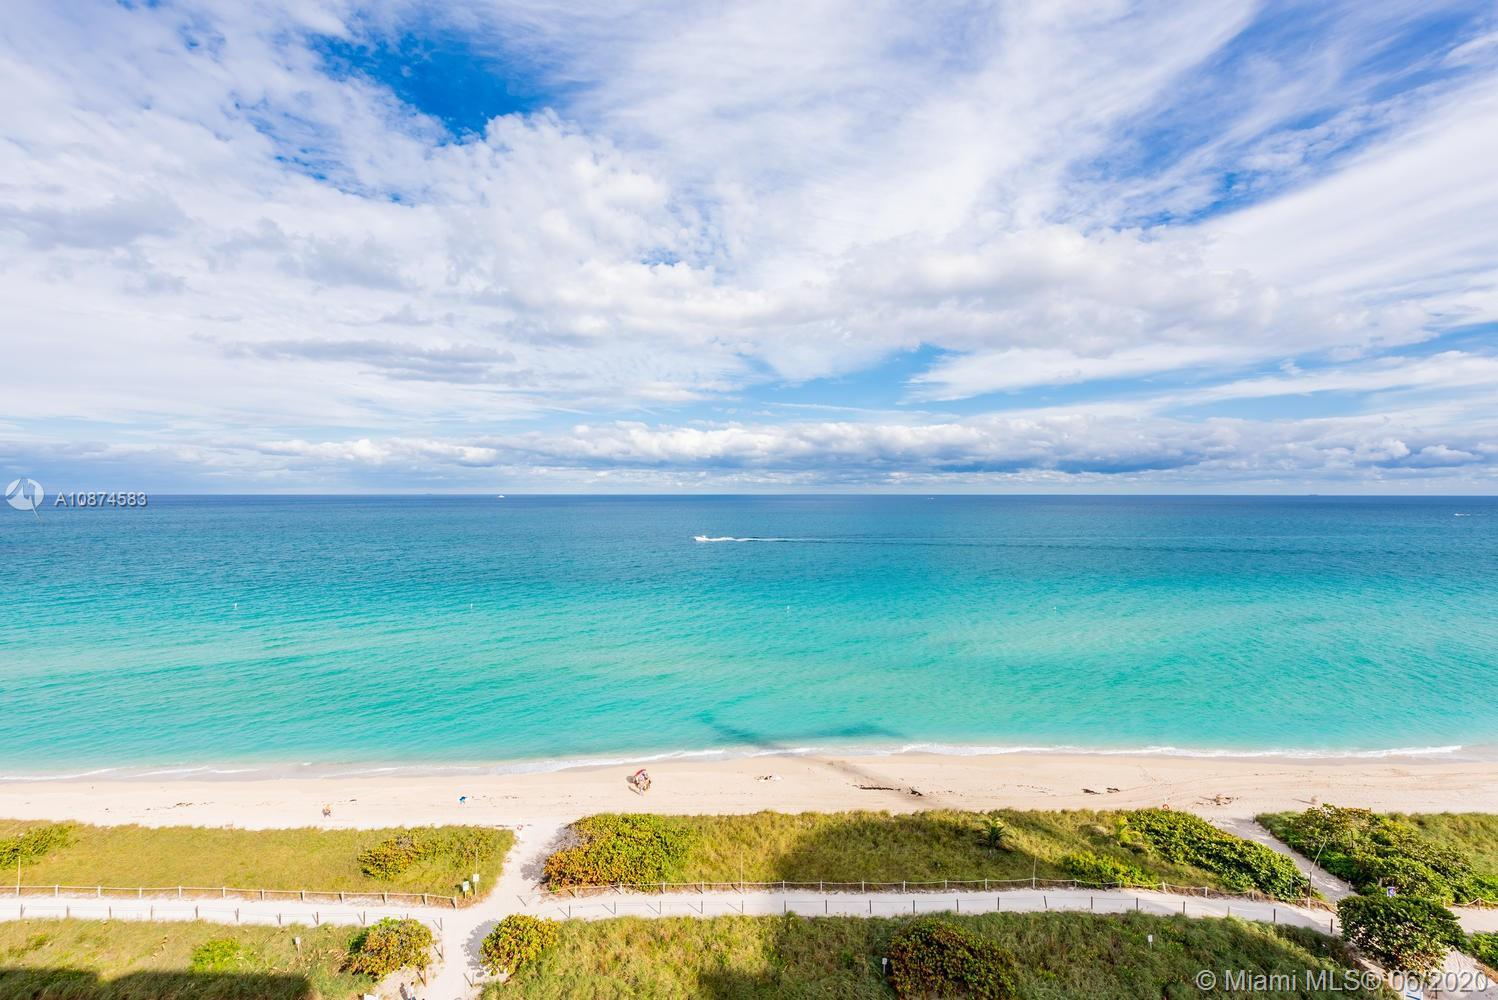 ONE OF A KIND BEACH PENTHOUSE - TOP FLOOR - UNIT WITH CAPTIVATING UNOBSTRUCTED & UNPARALLELED DIRECT